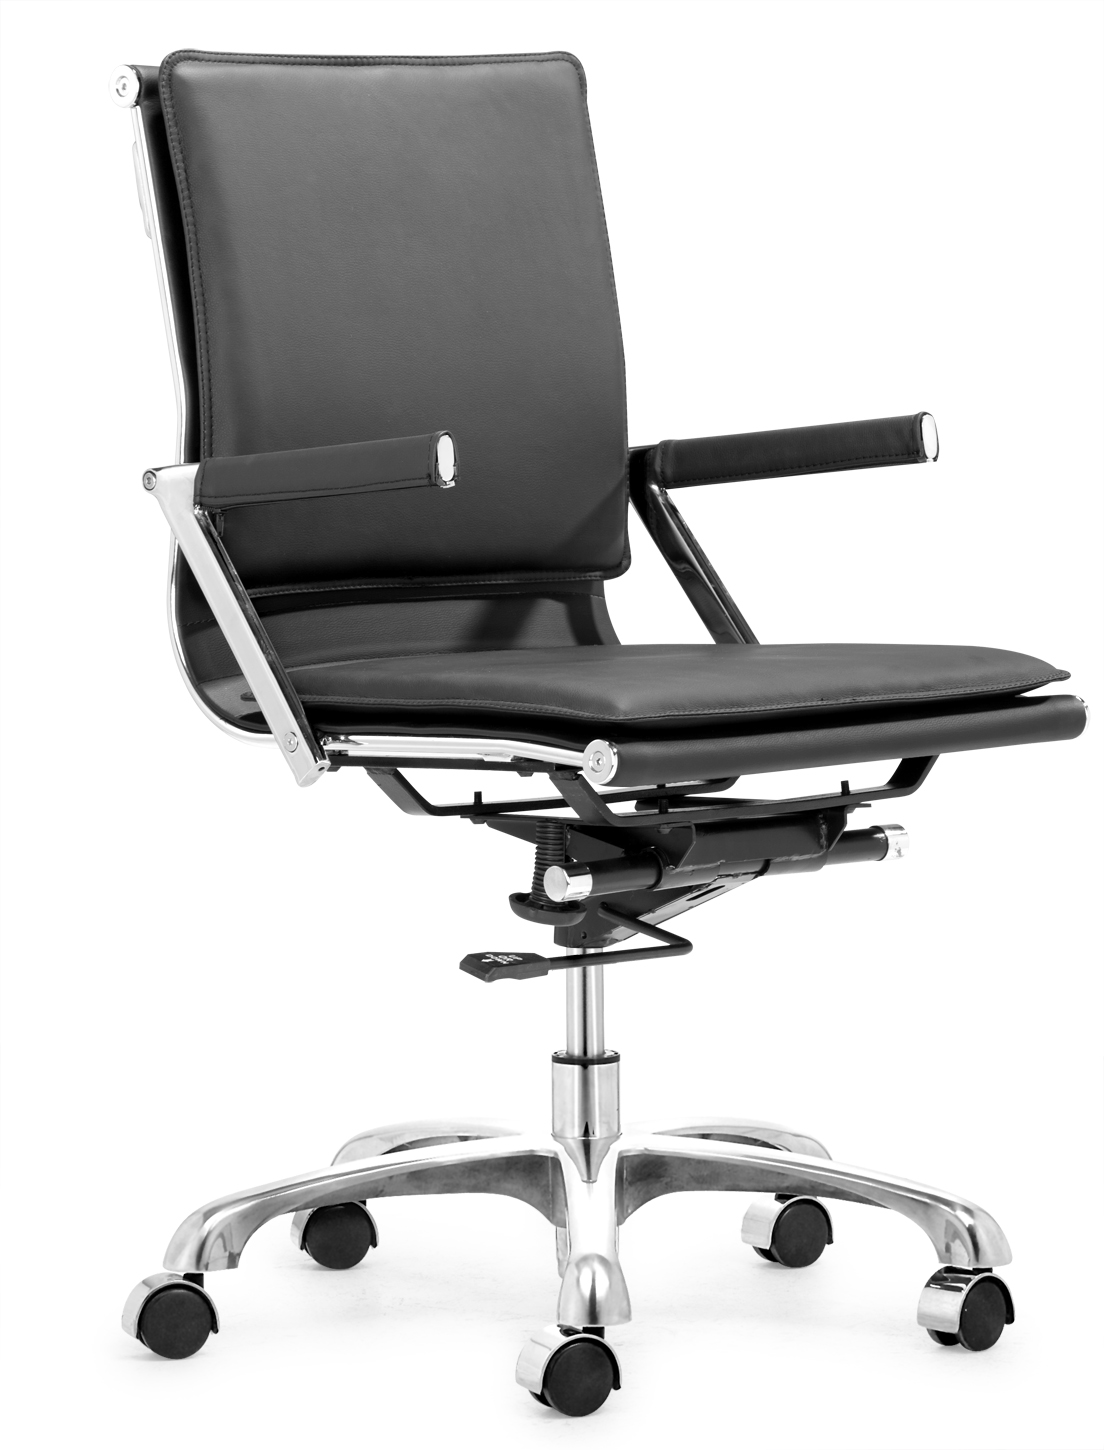 Modern Office Chair Lider Plus Office Chair By Zuo Modern In Office Chairs